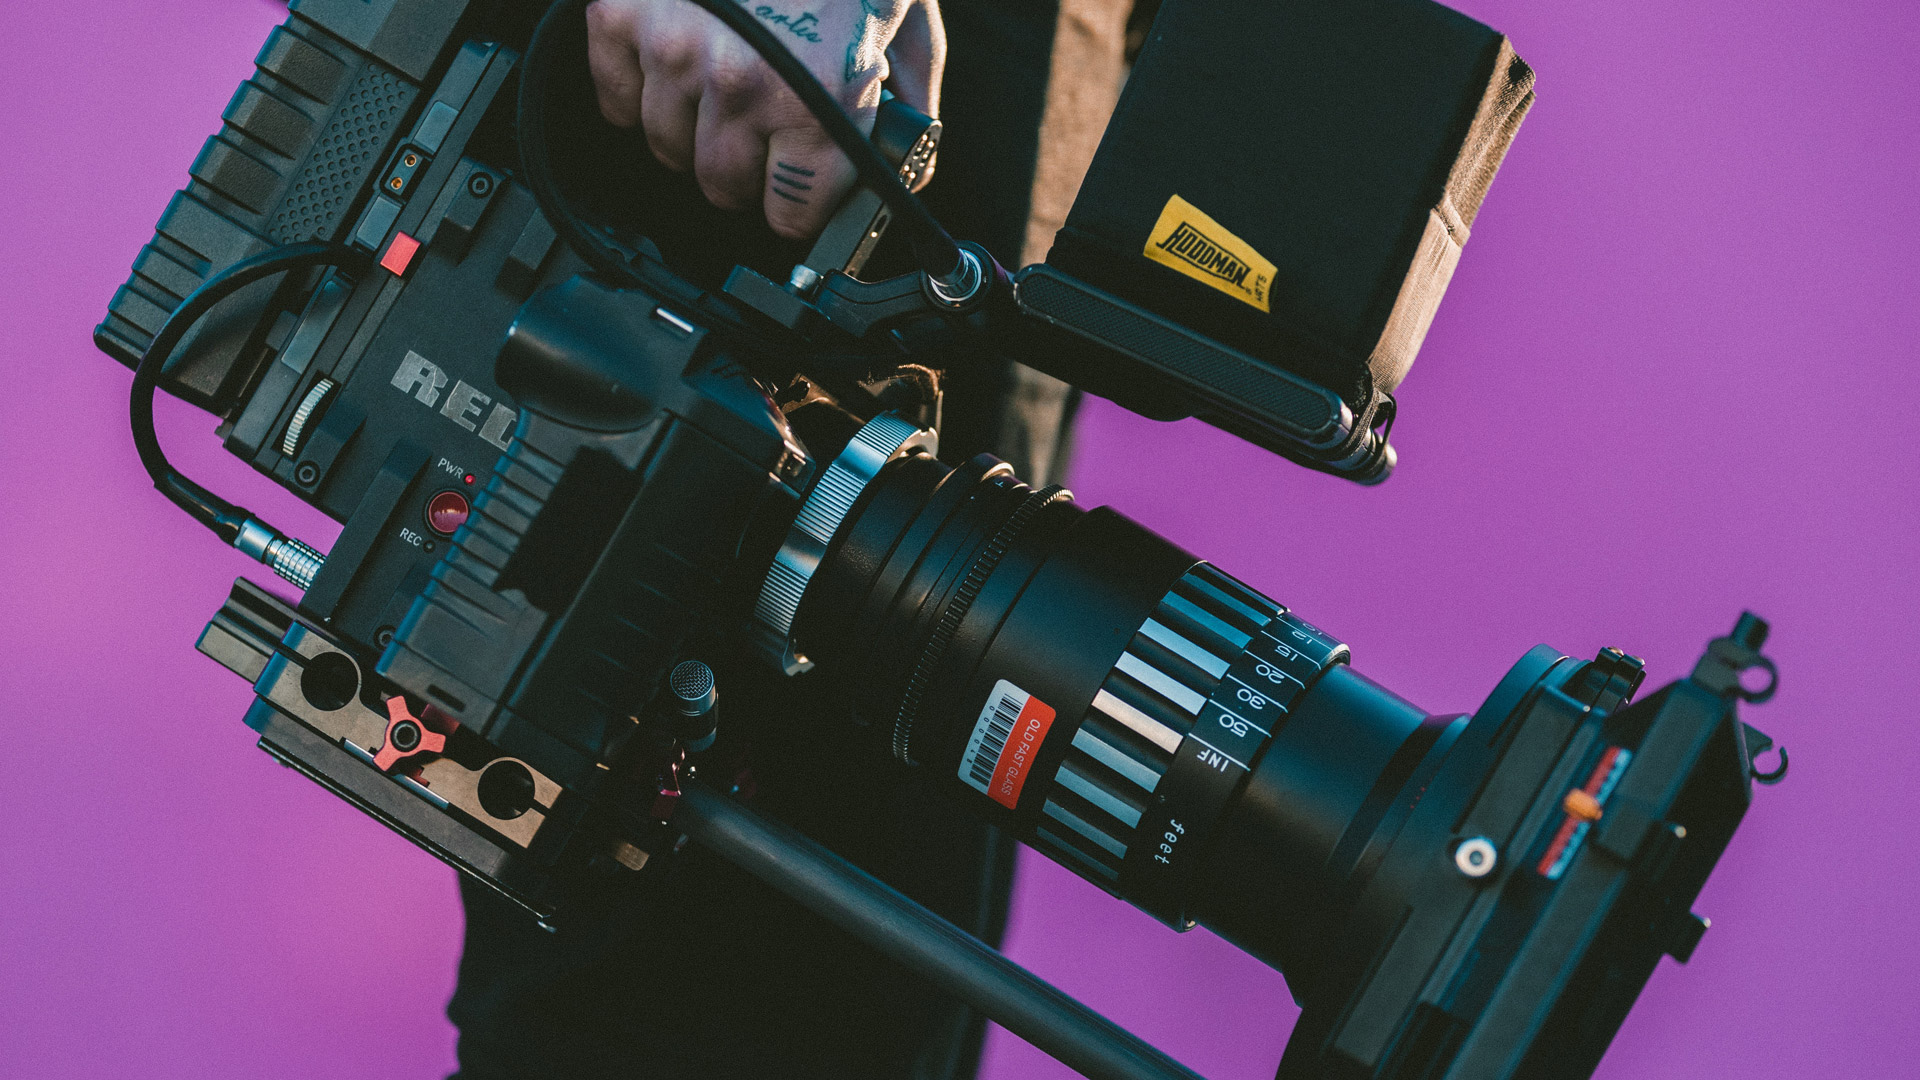 12 of the Best Explainer Video Production Examples & Why They Are So Effective featured image